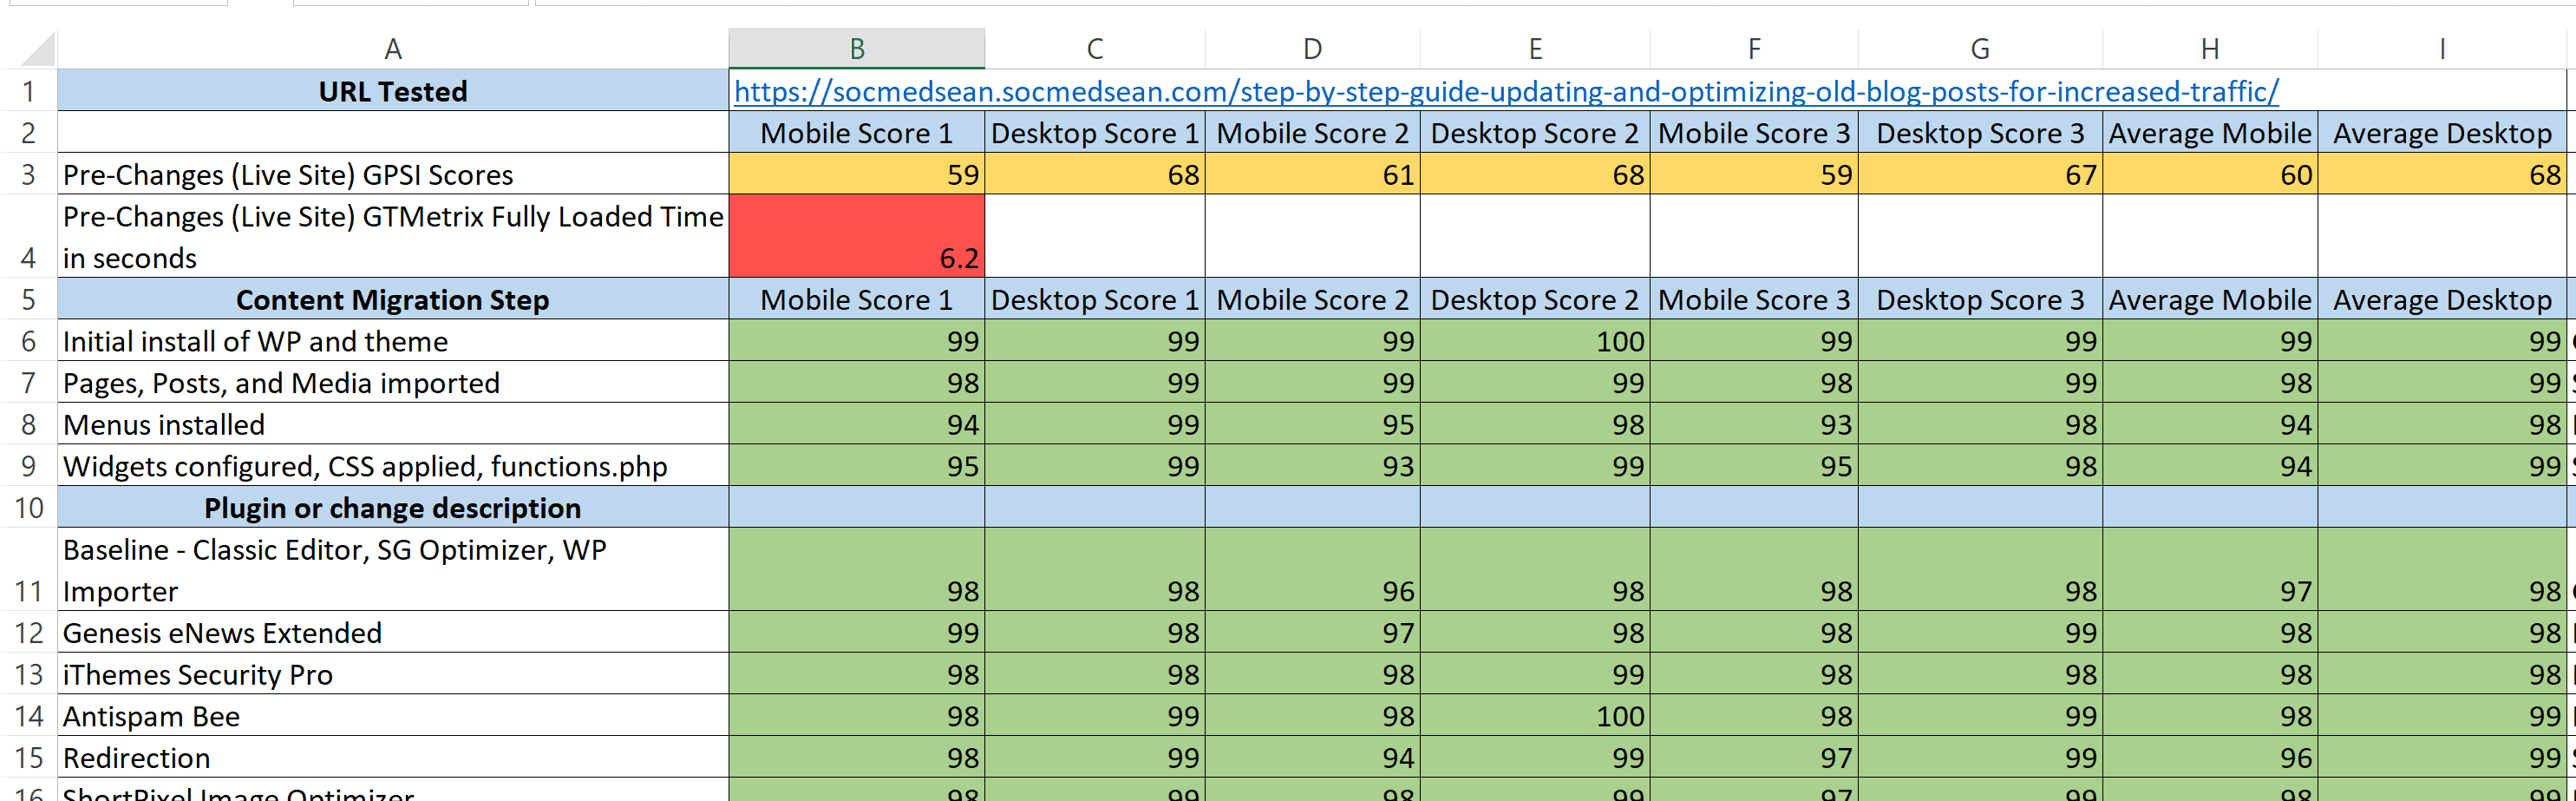 The color coding in the spreadsheet aligns with the colors used by Google Page Speed Insights testing results